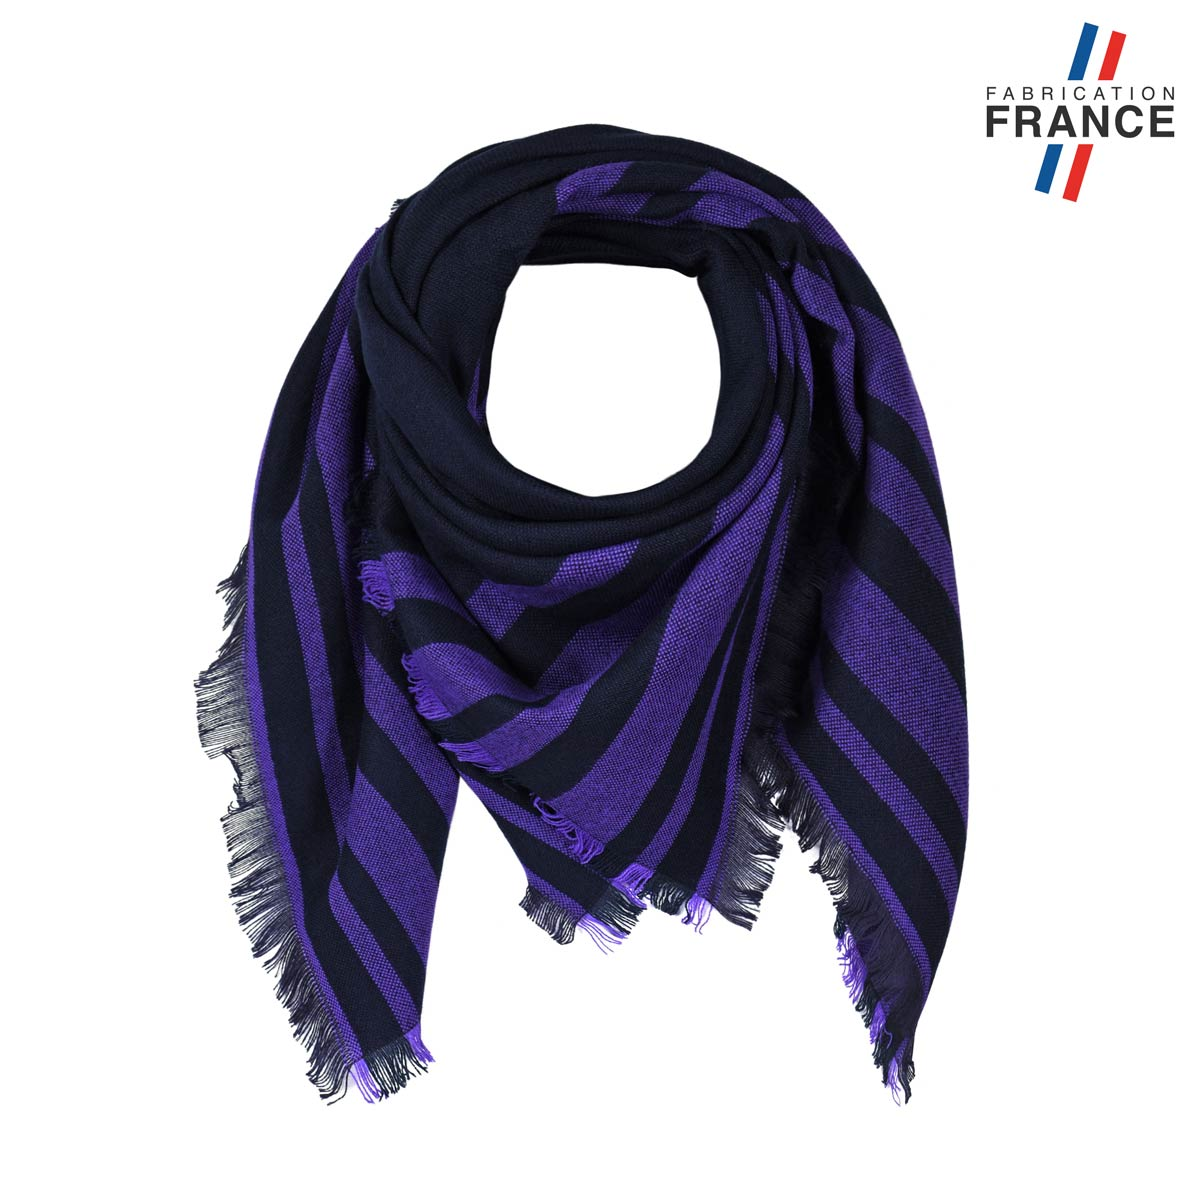 AT-05825_F12-1FR_Echarpe-carree-rayures-violettes-made-in-france